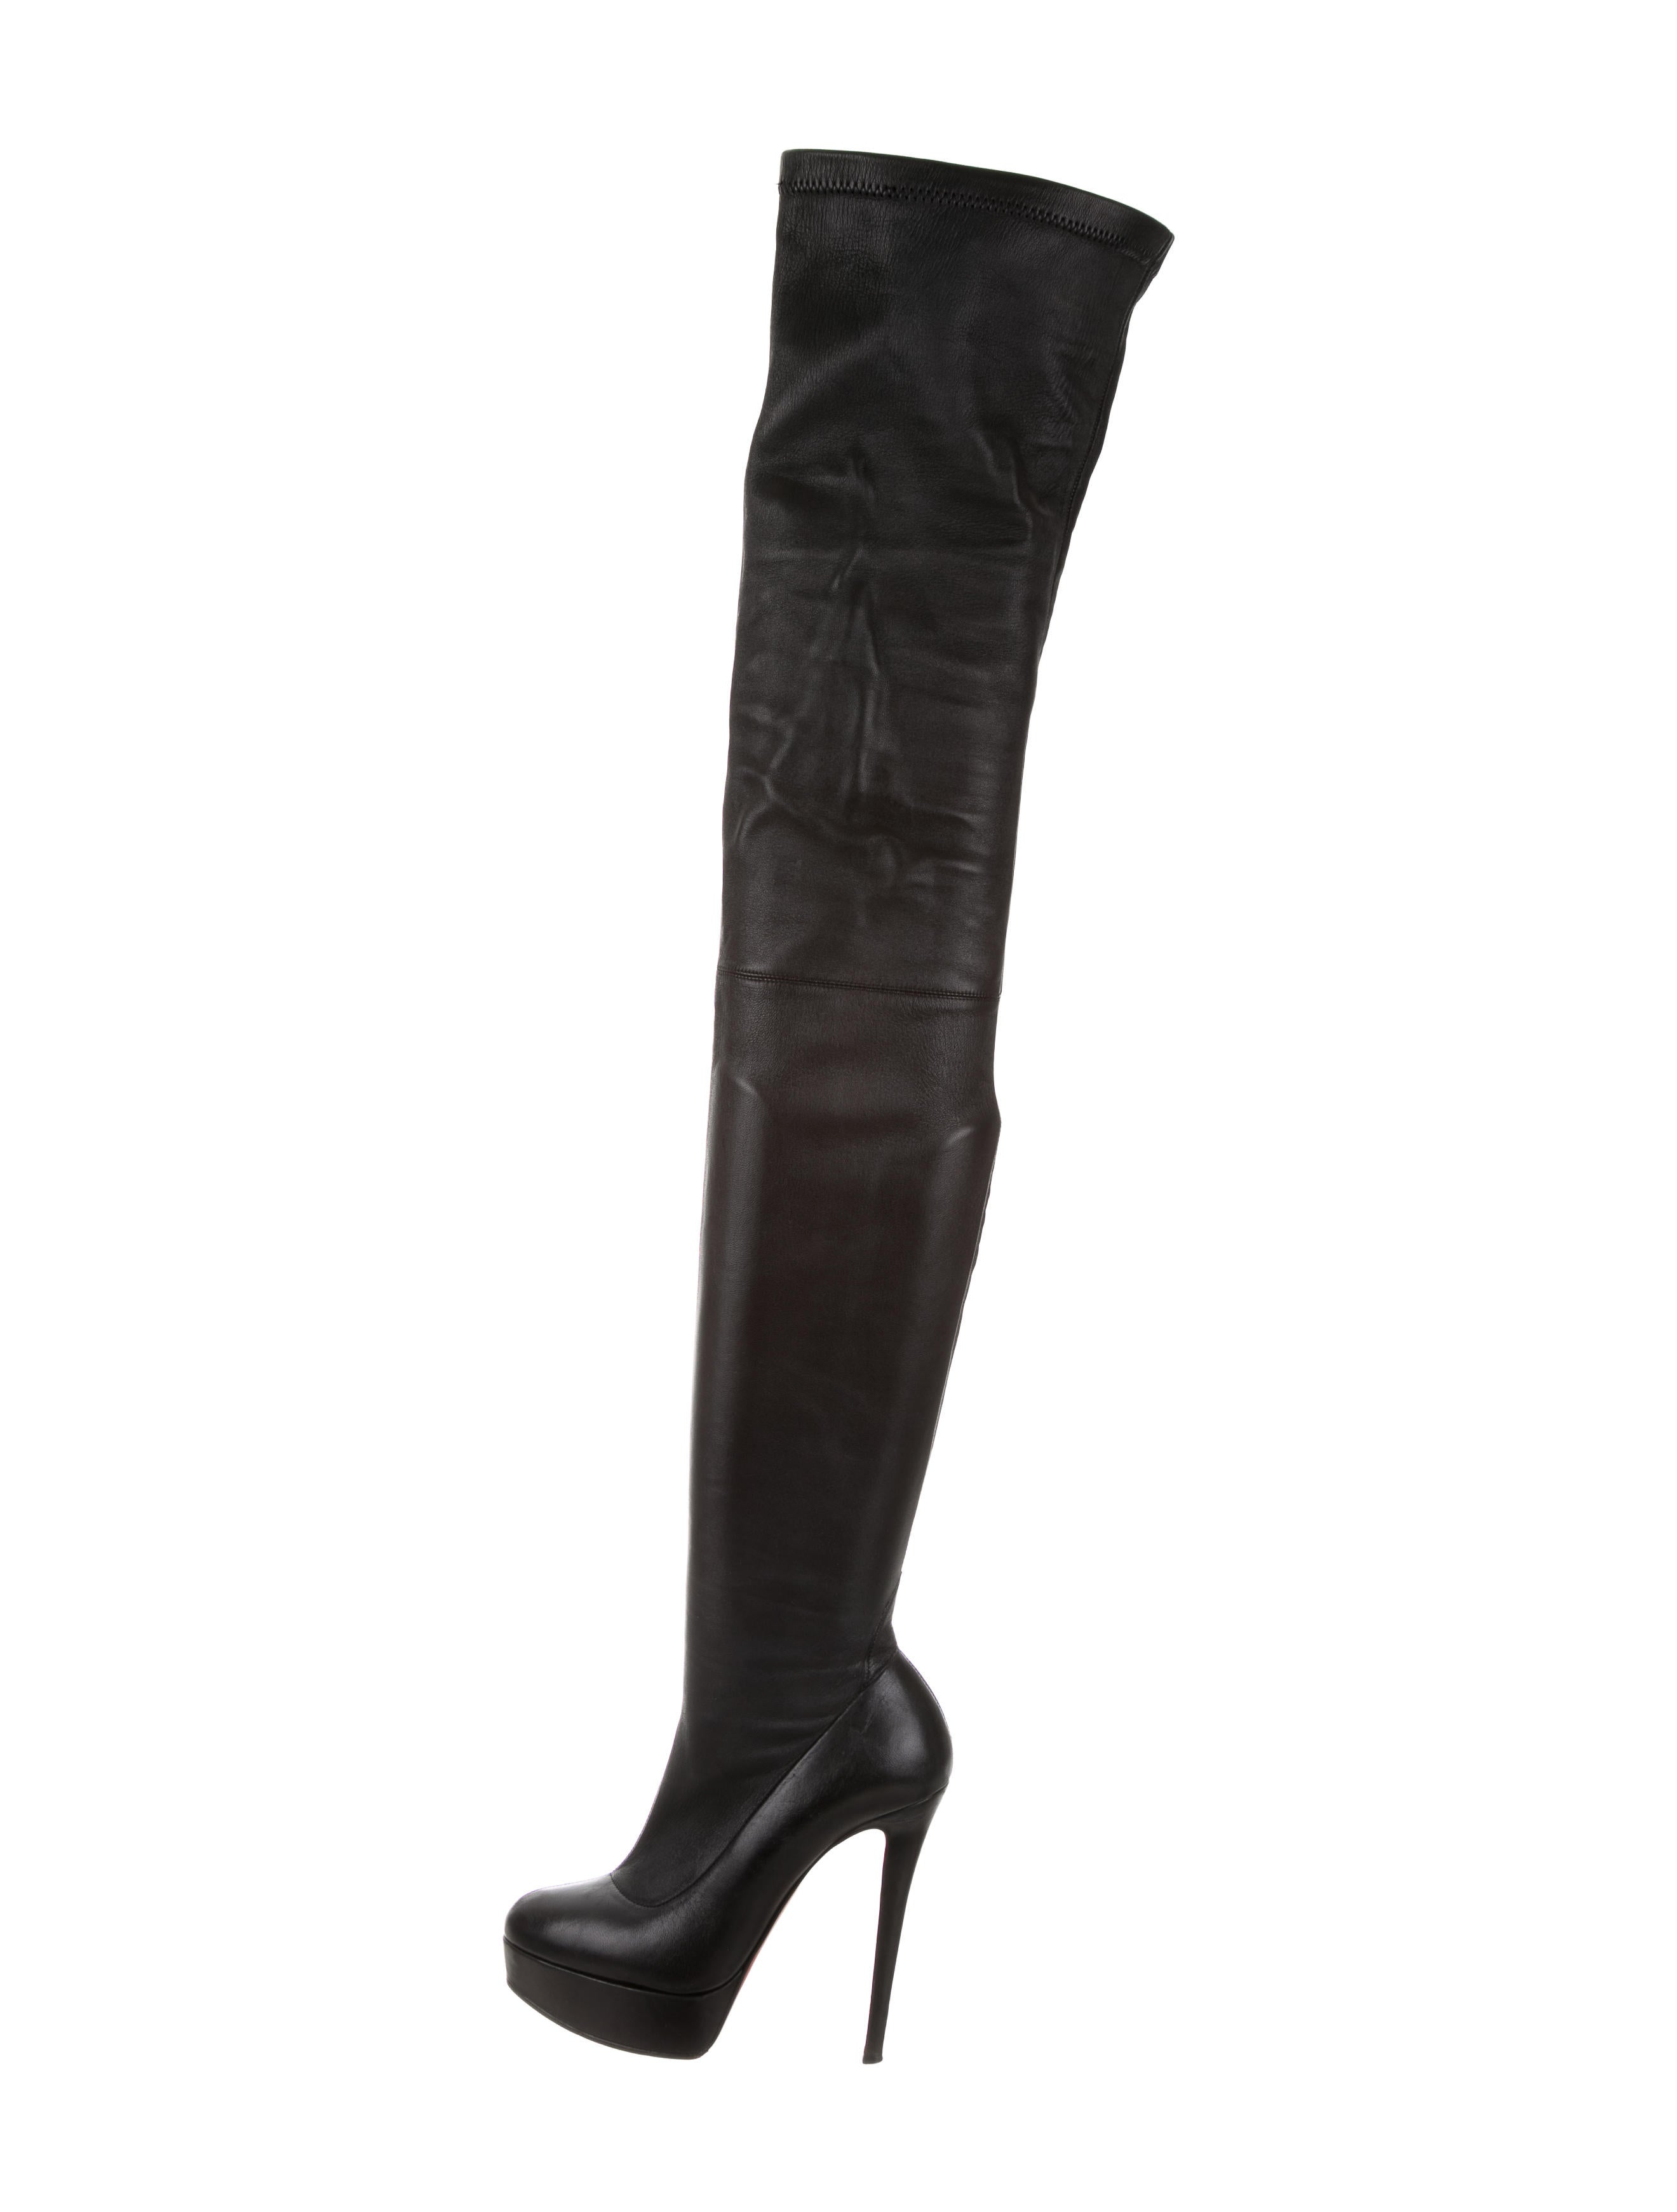 58e75e80cfa Christian Louboutin Gazolina 140 Thigh-High Boots - Shoes - CHT61363 ...